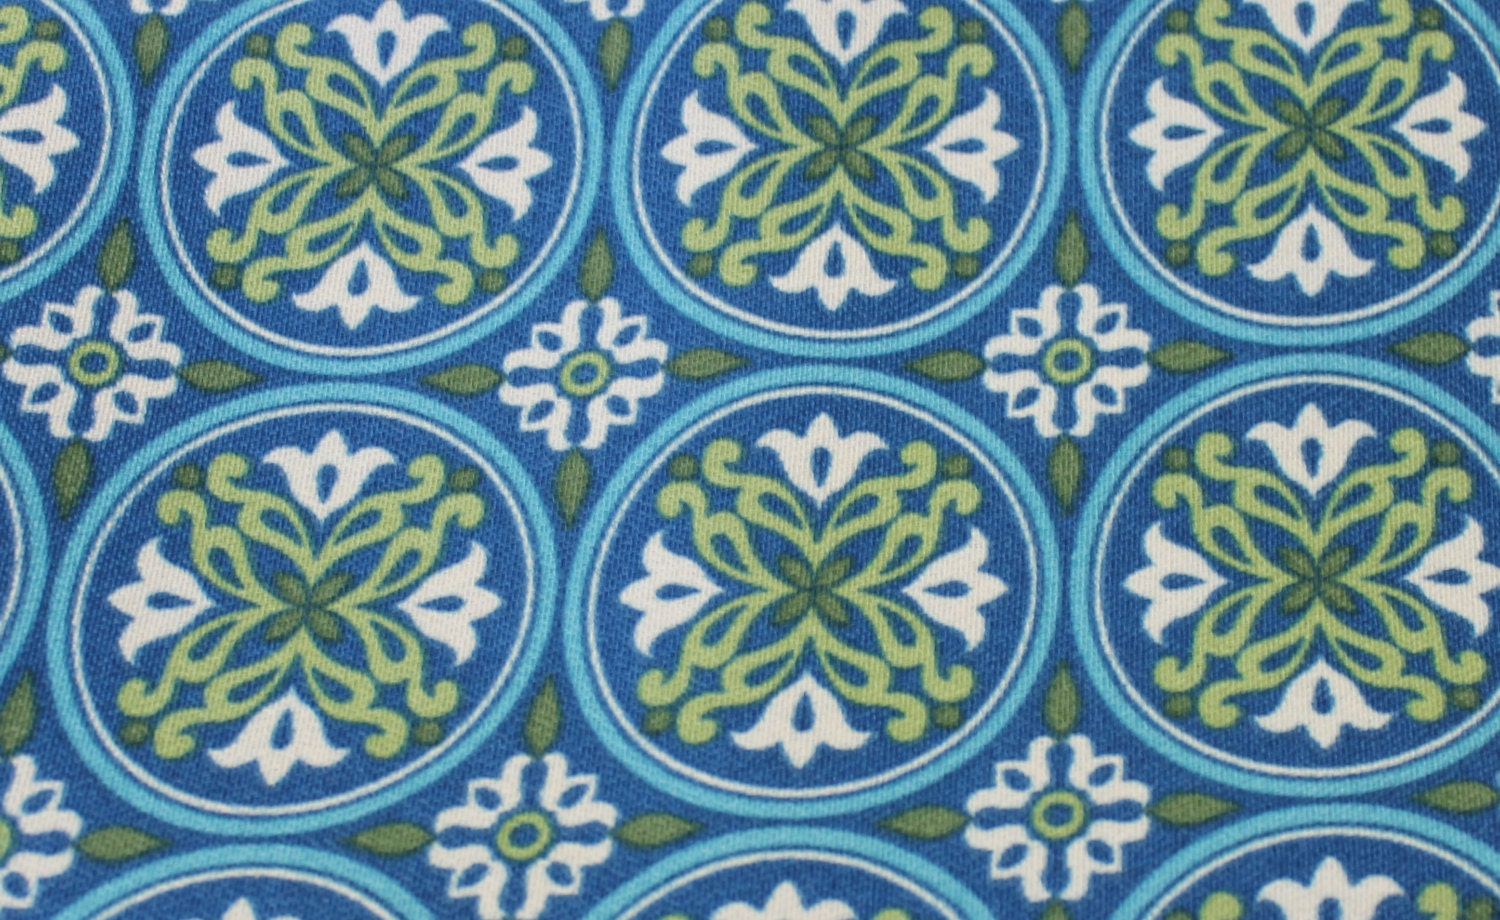 Upholstery Fabric Home Decor Fabric Blue Medallion